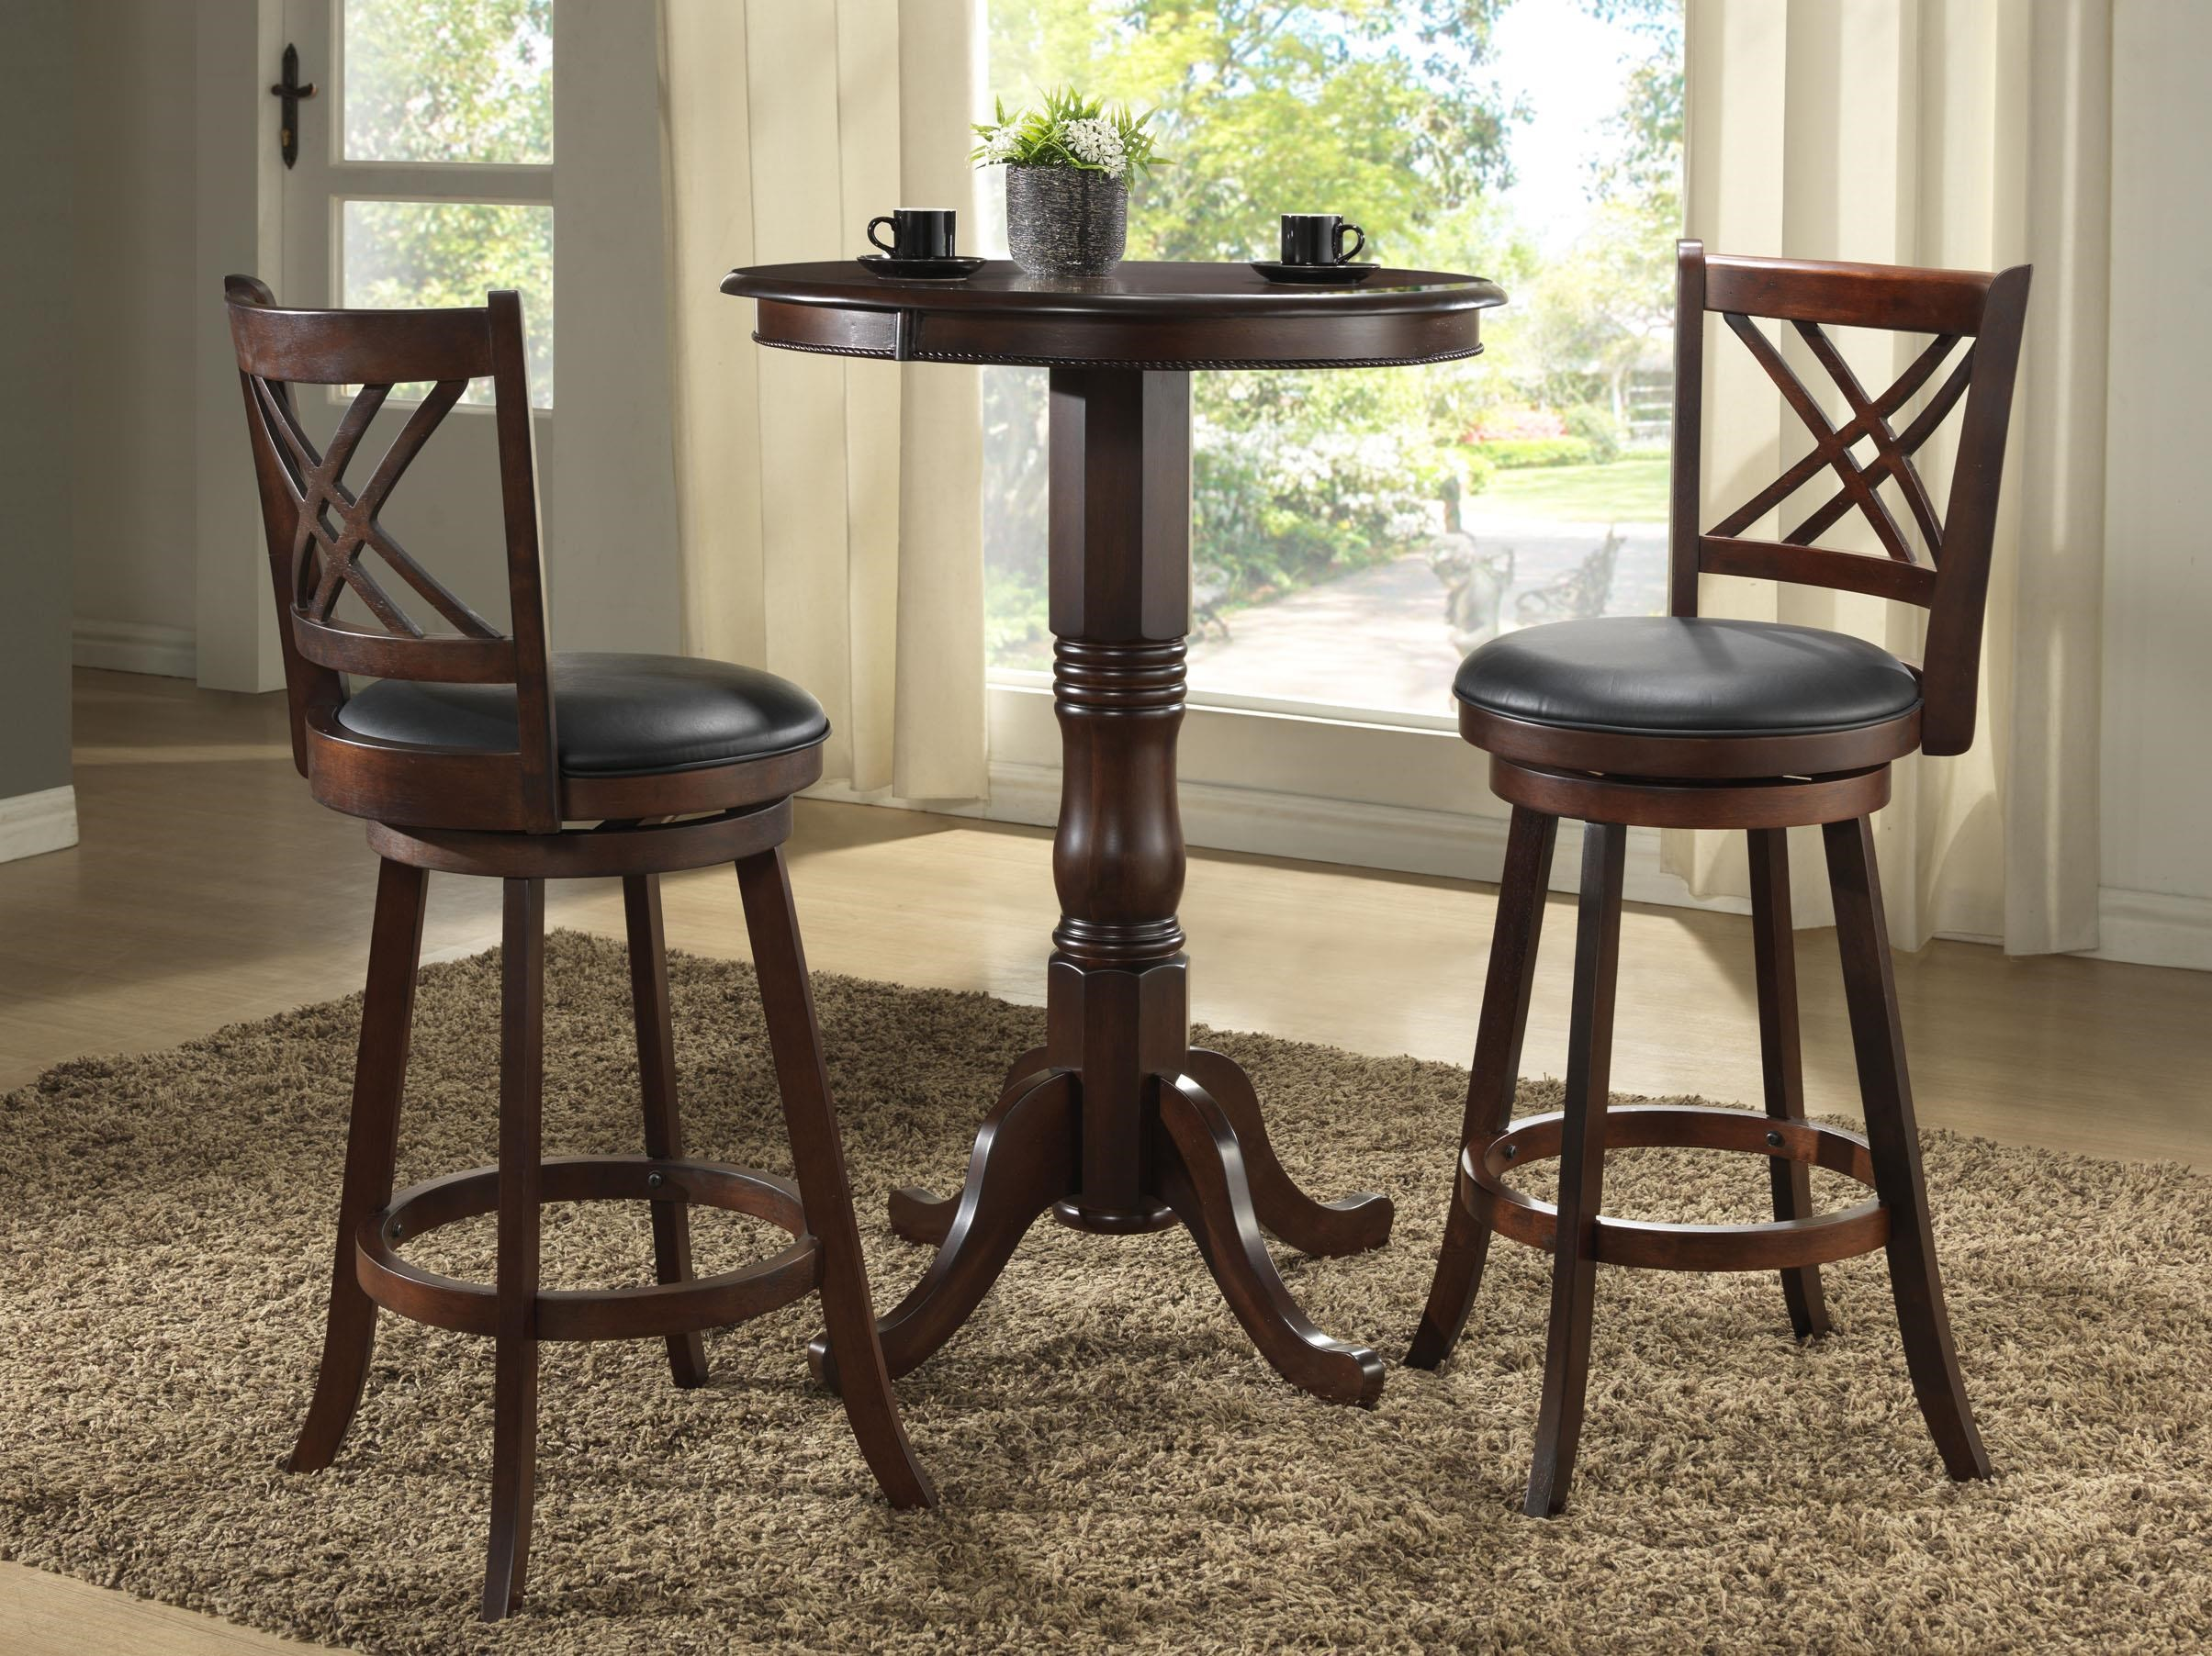 3pc Pub Table With Two 24 Inch Barstools By Eci Furniture Wolf